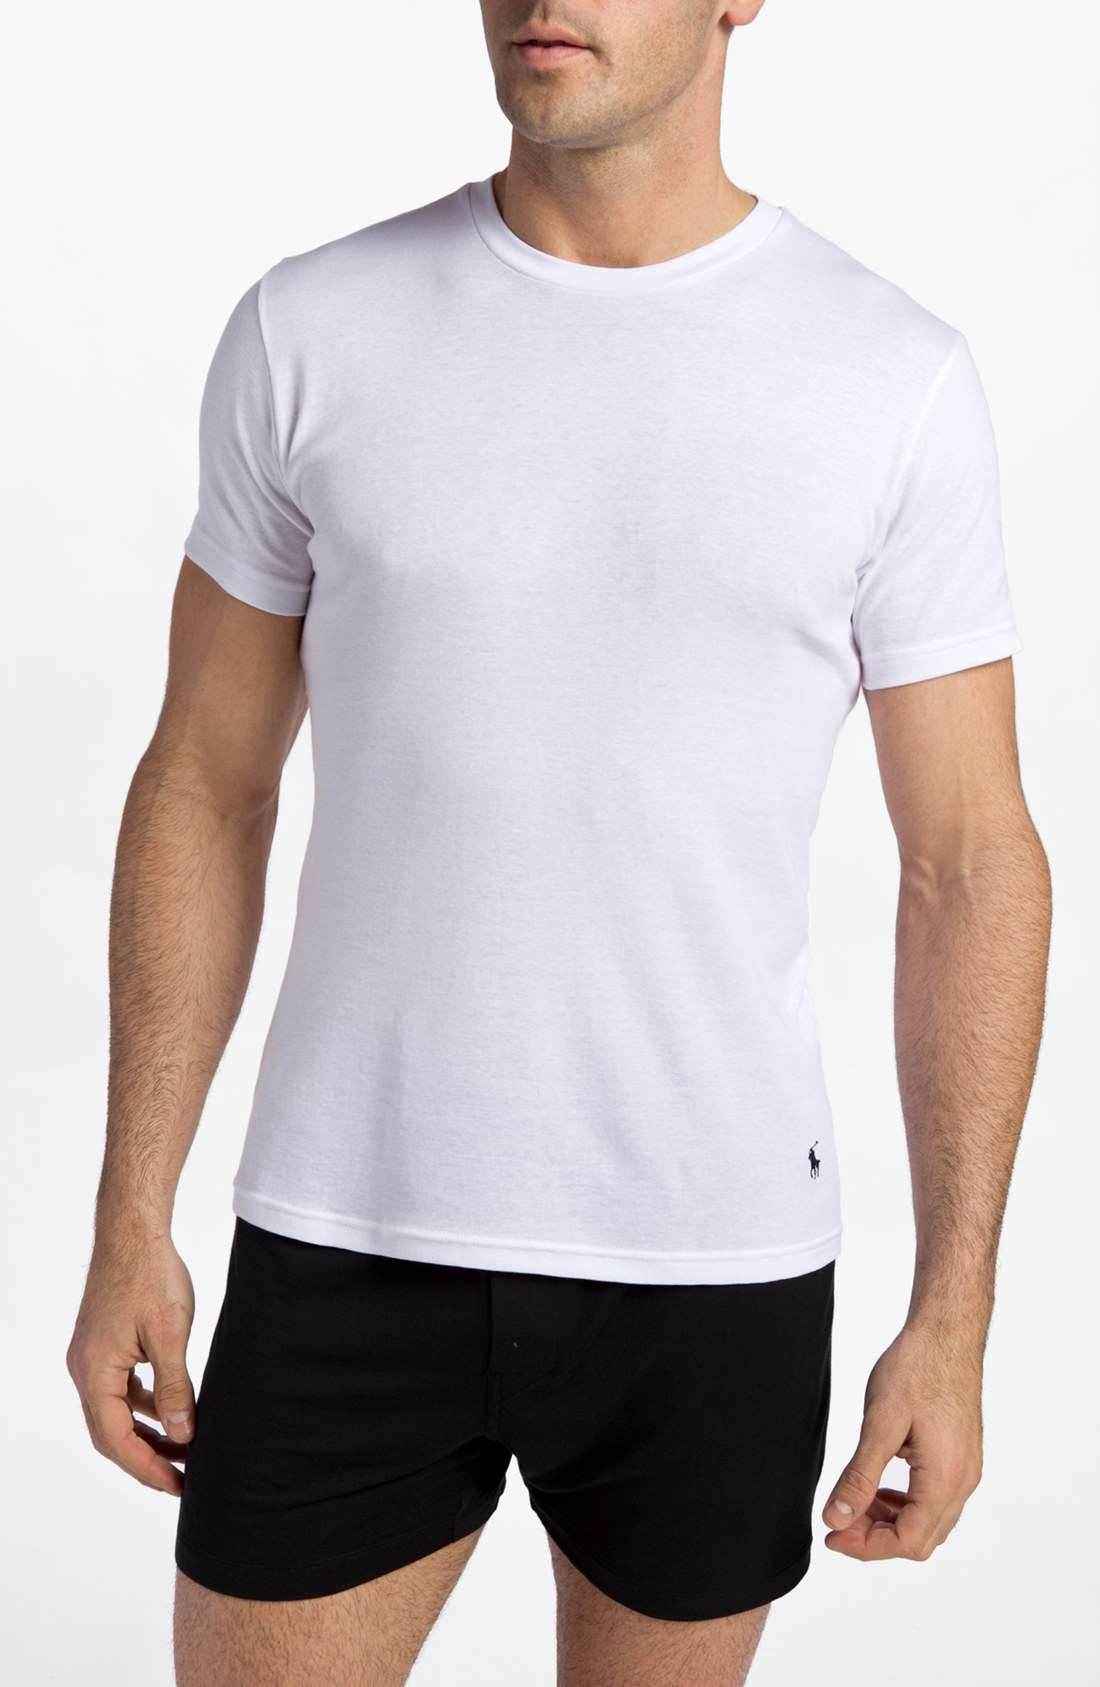 Polo Ralph Lauren Undershirts for Men.